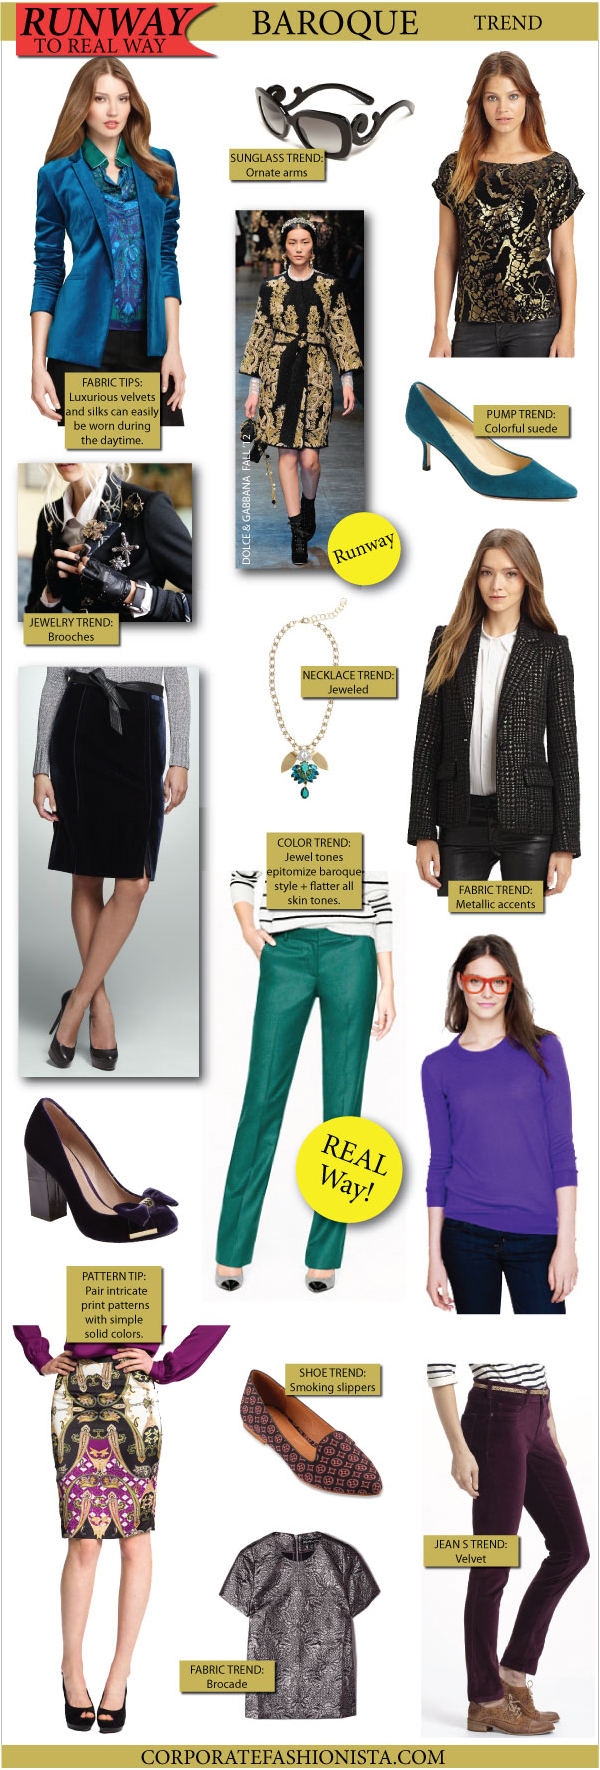 84ce1c6d546 Corporate Fashionista - Page 29 of 77 - A fashion and lifestyle blog ...